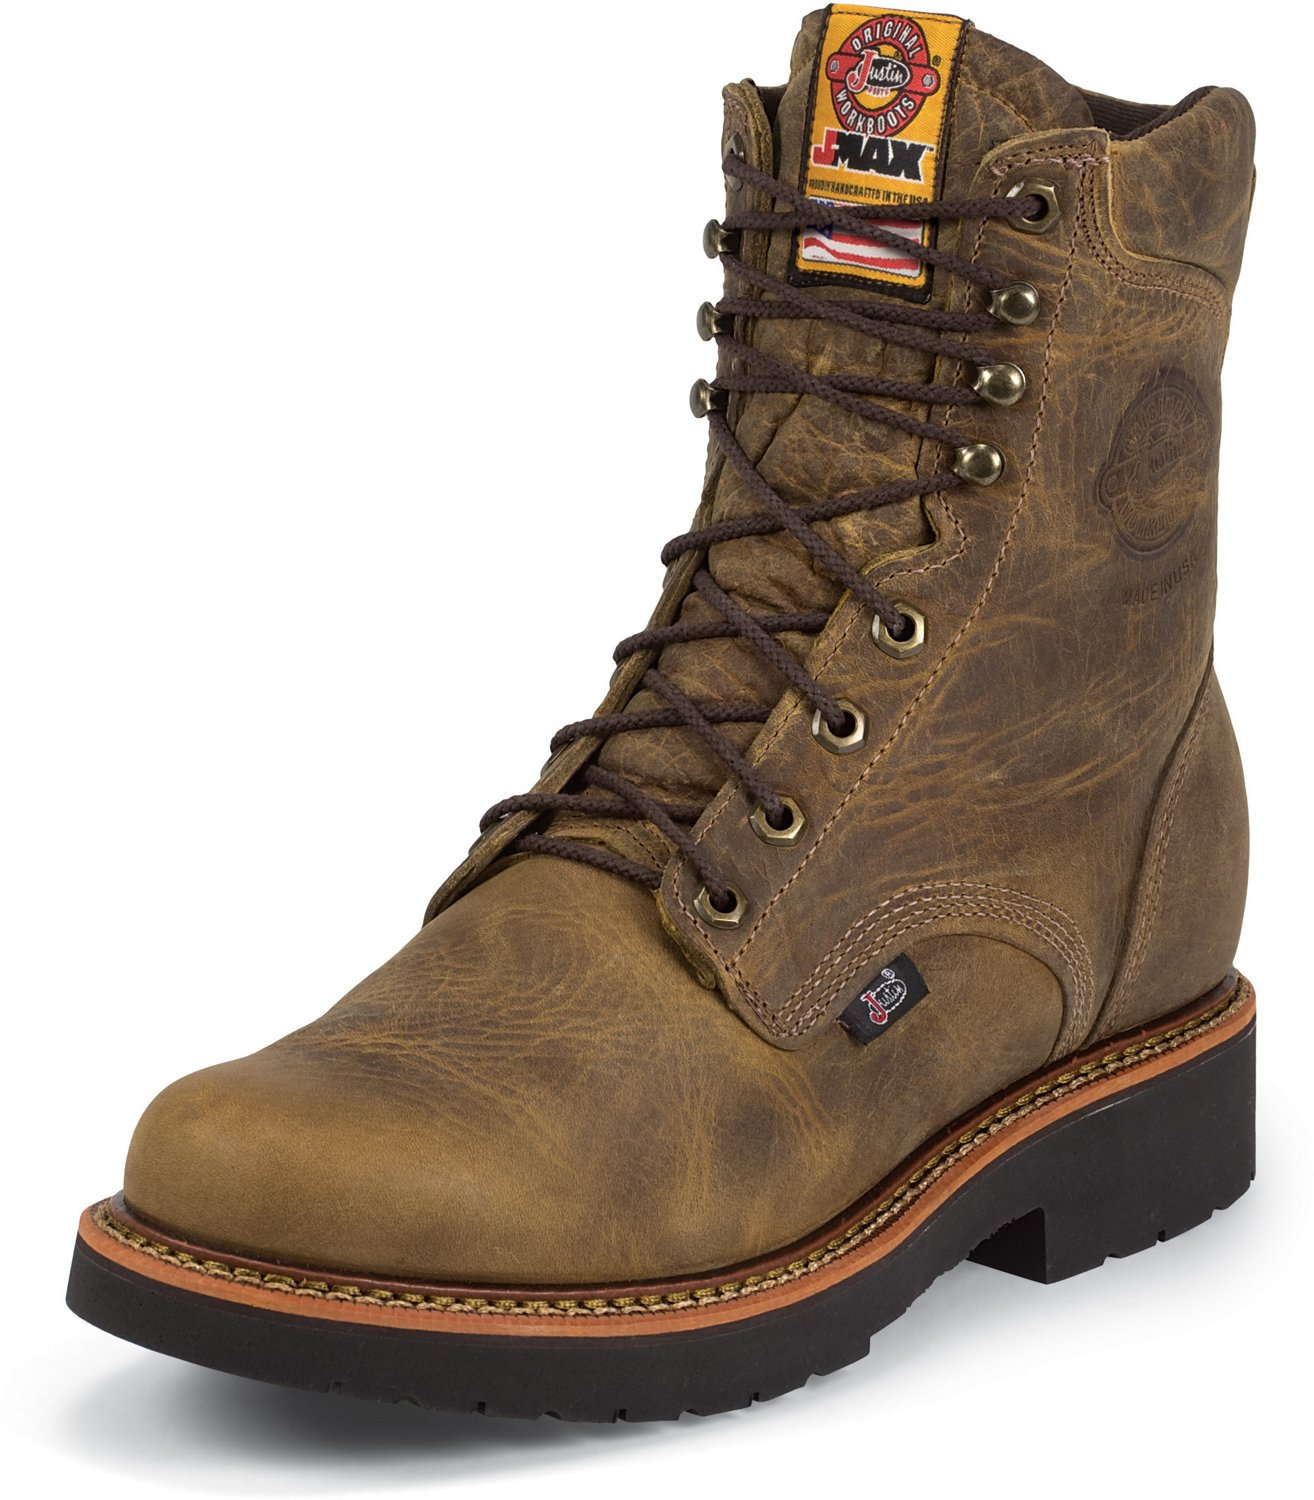 e3931f7ac7b6b6 Display product reviews for Justin Men s Rugged Gaucho Steel-Toe Work Boots